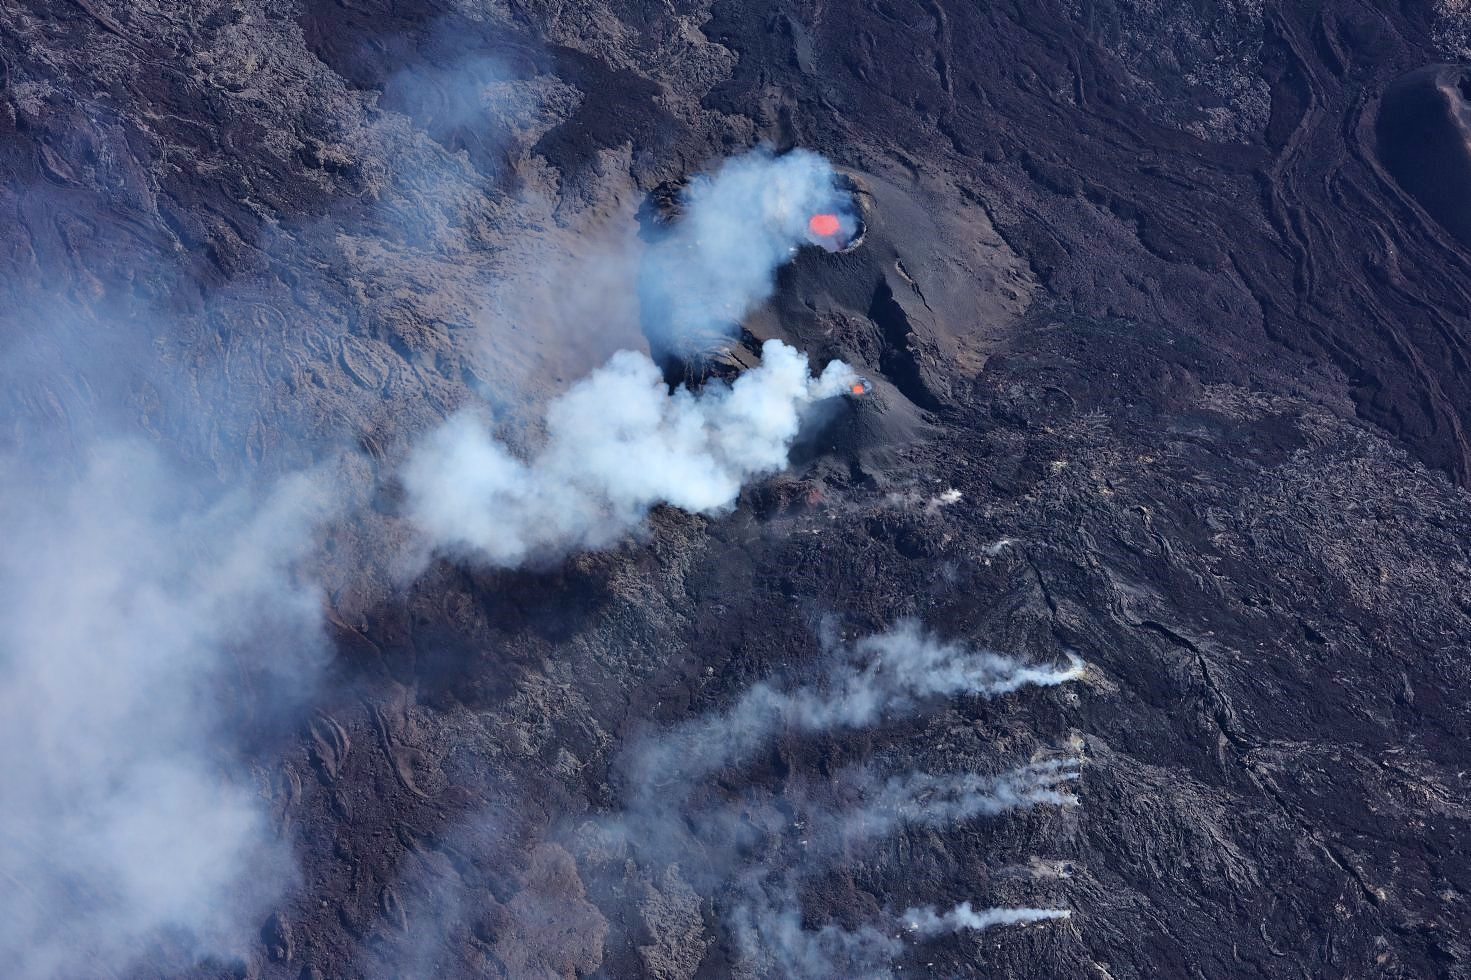 Piton de La Fournaise - the 2 active cones and degassing on the lava tunnel flows - photo OVPF 04.05.2021 / 09h loc - 05h UT